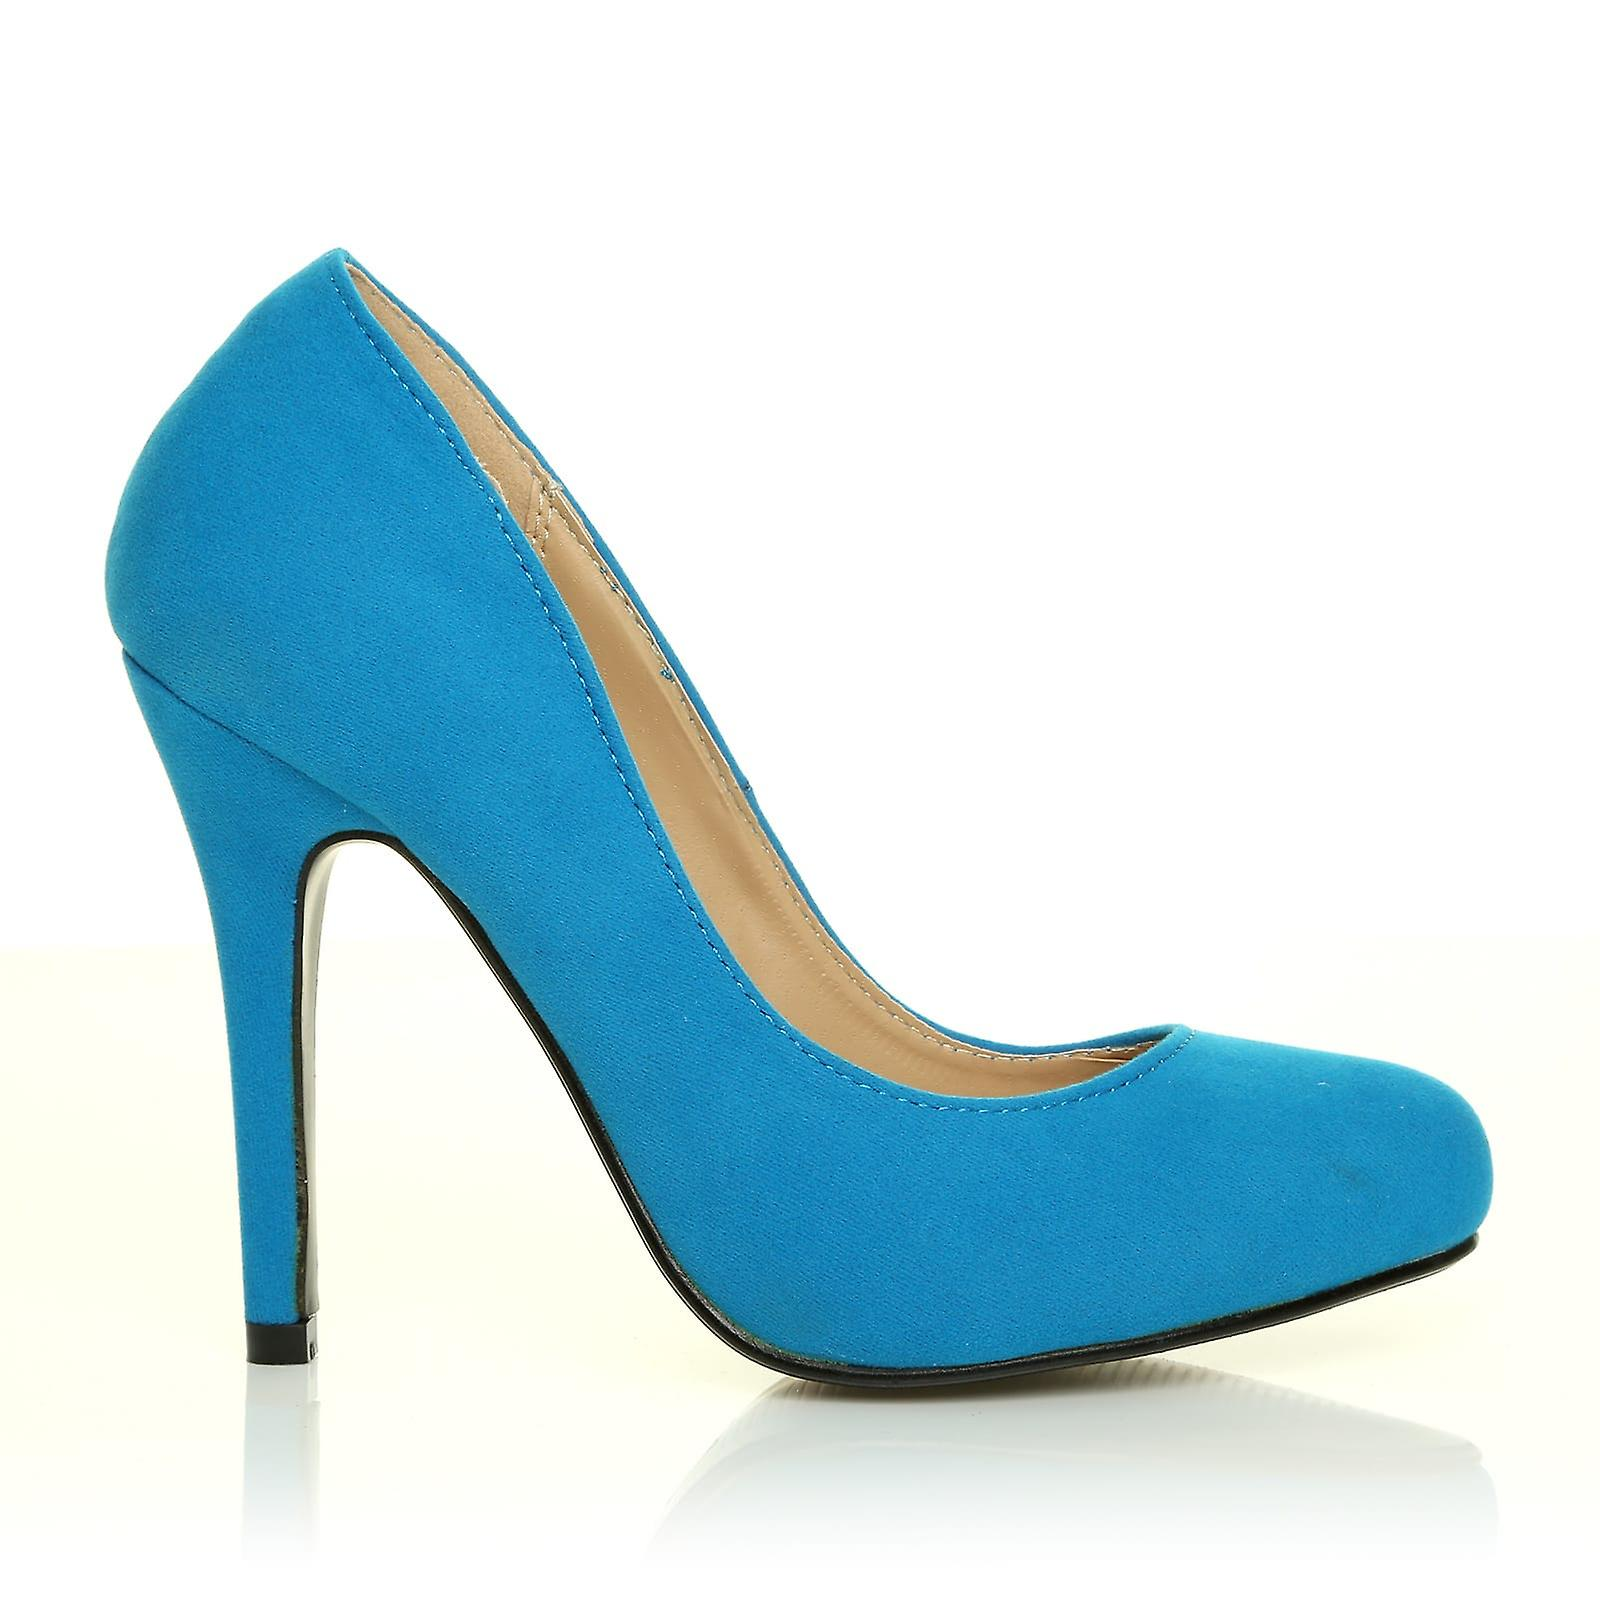 HILLARY Turquoise Heel Faux Suede Stilleto High Heel Turquoise Classic Court Shoes 27d22b